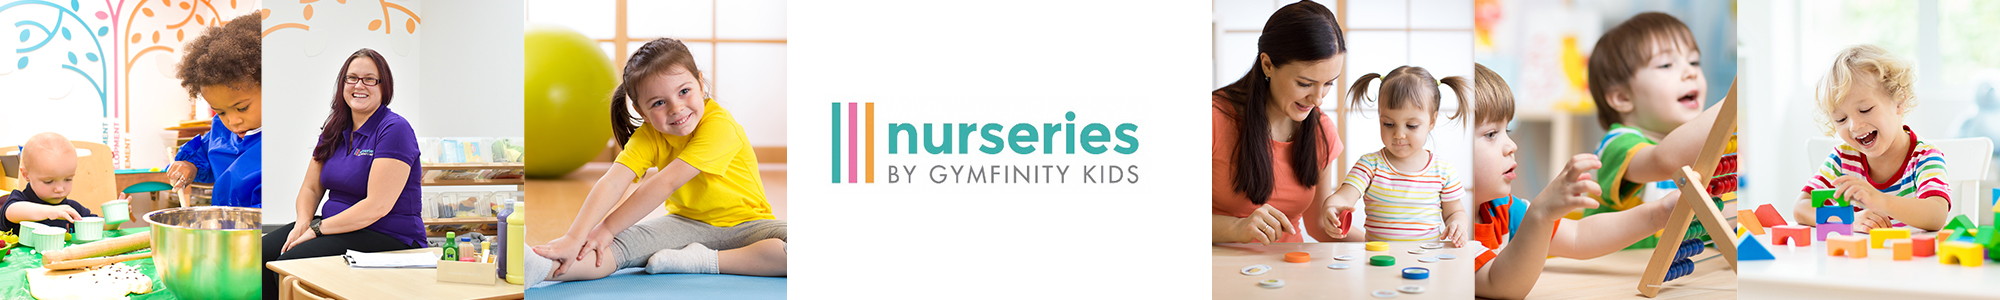 Nurseries by Gymfinity Kids